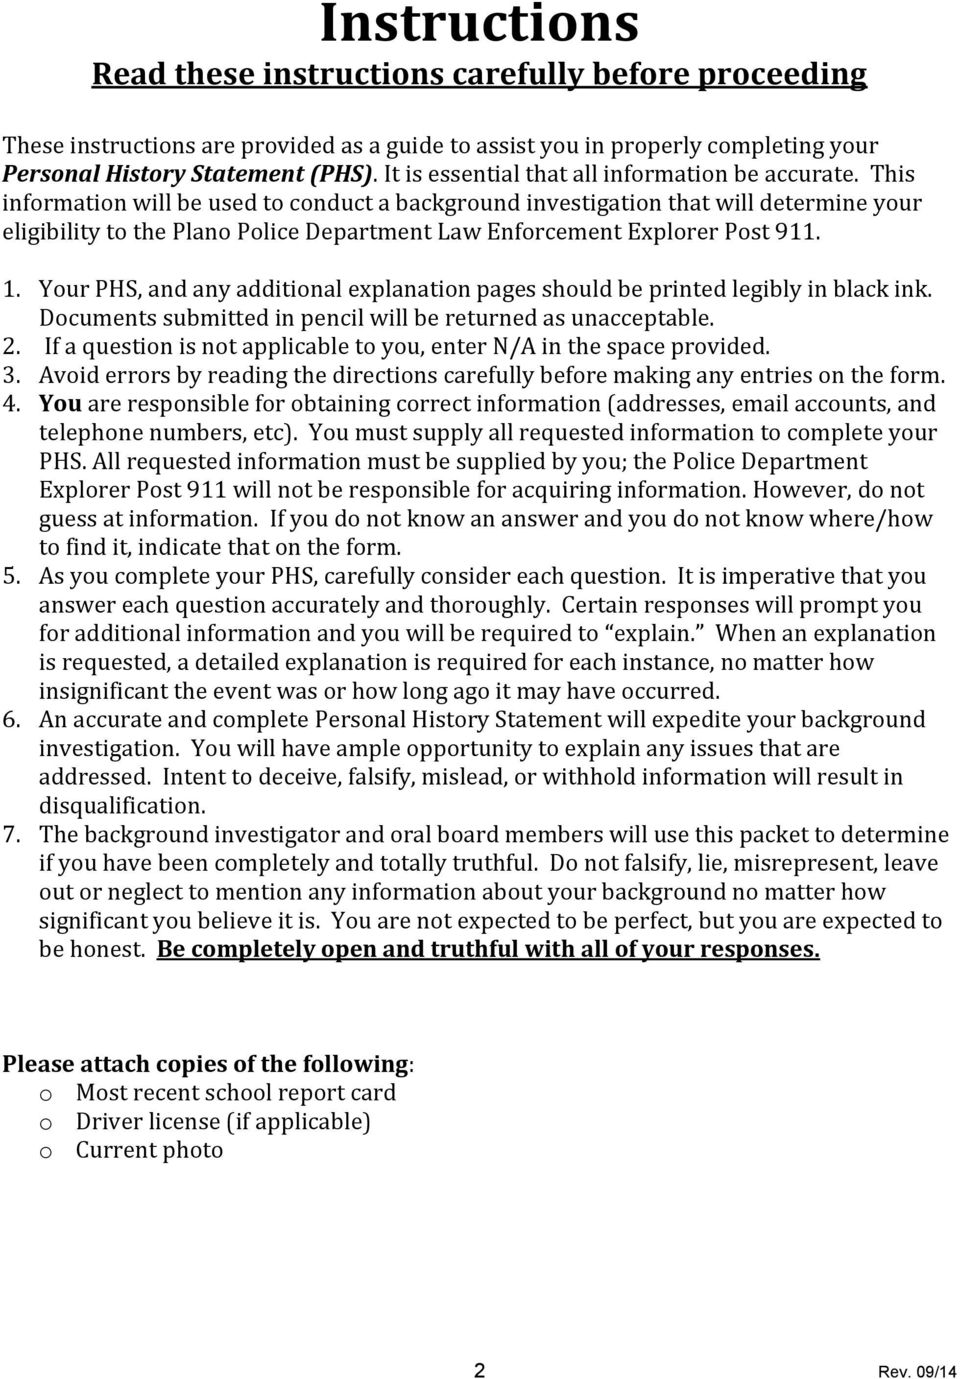 This information will be used to conduct a background investigation that will determine your eligibility to the Plano Police Department Law Enforcement Explorer Post 911. 1.